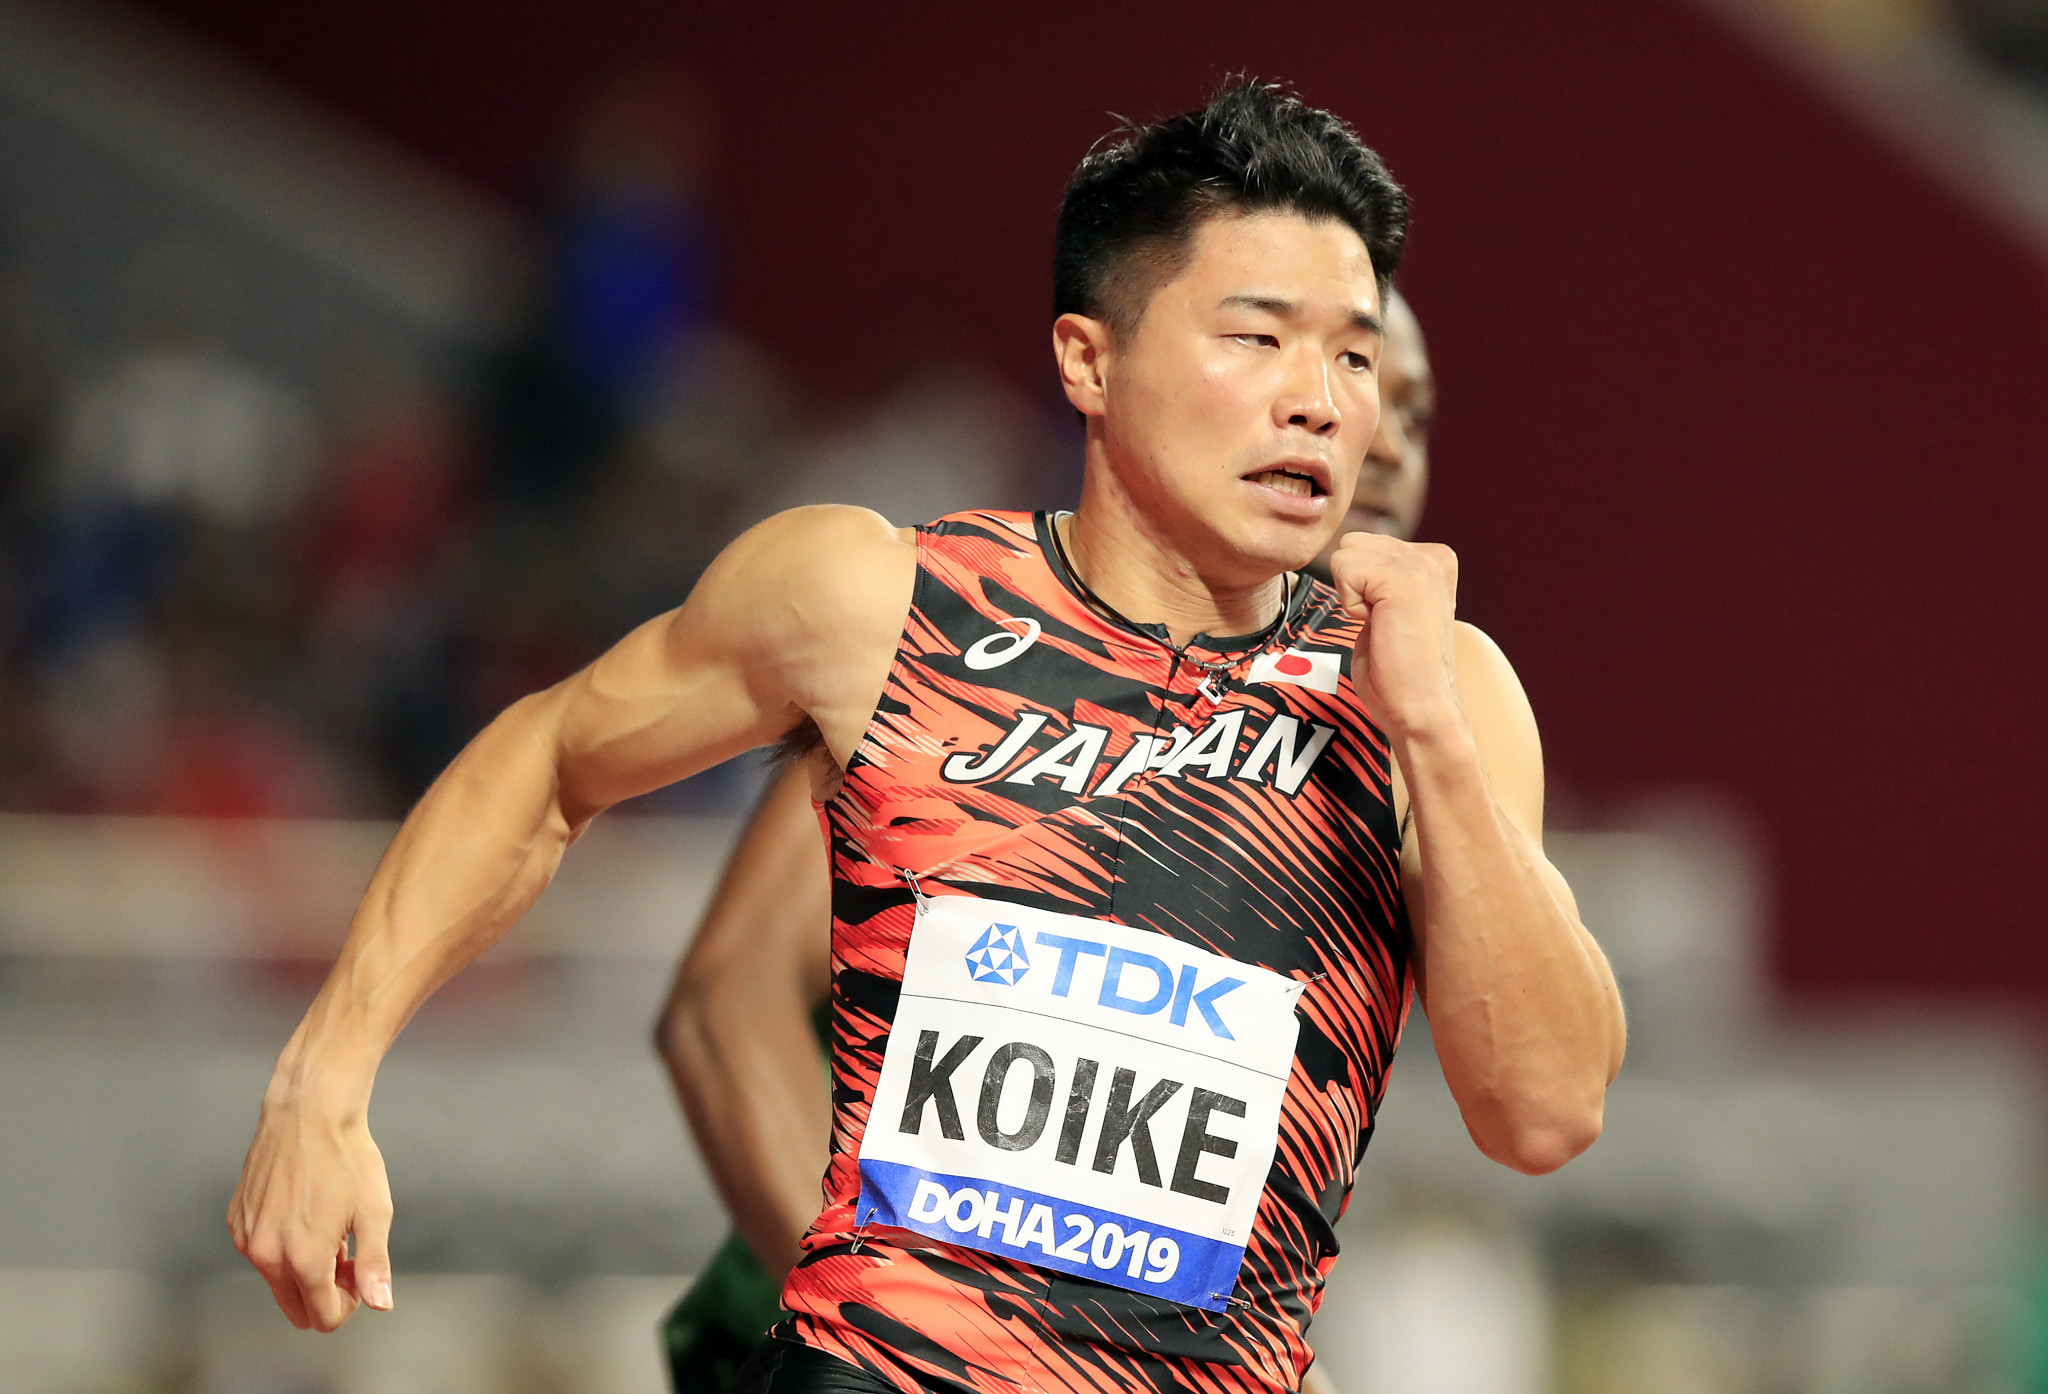 Yuki Koike will be among those in the men's 100m field later this month ©Getty Images